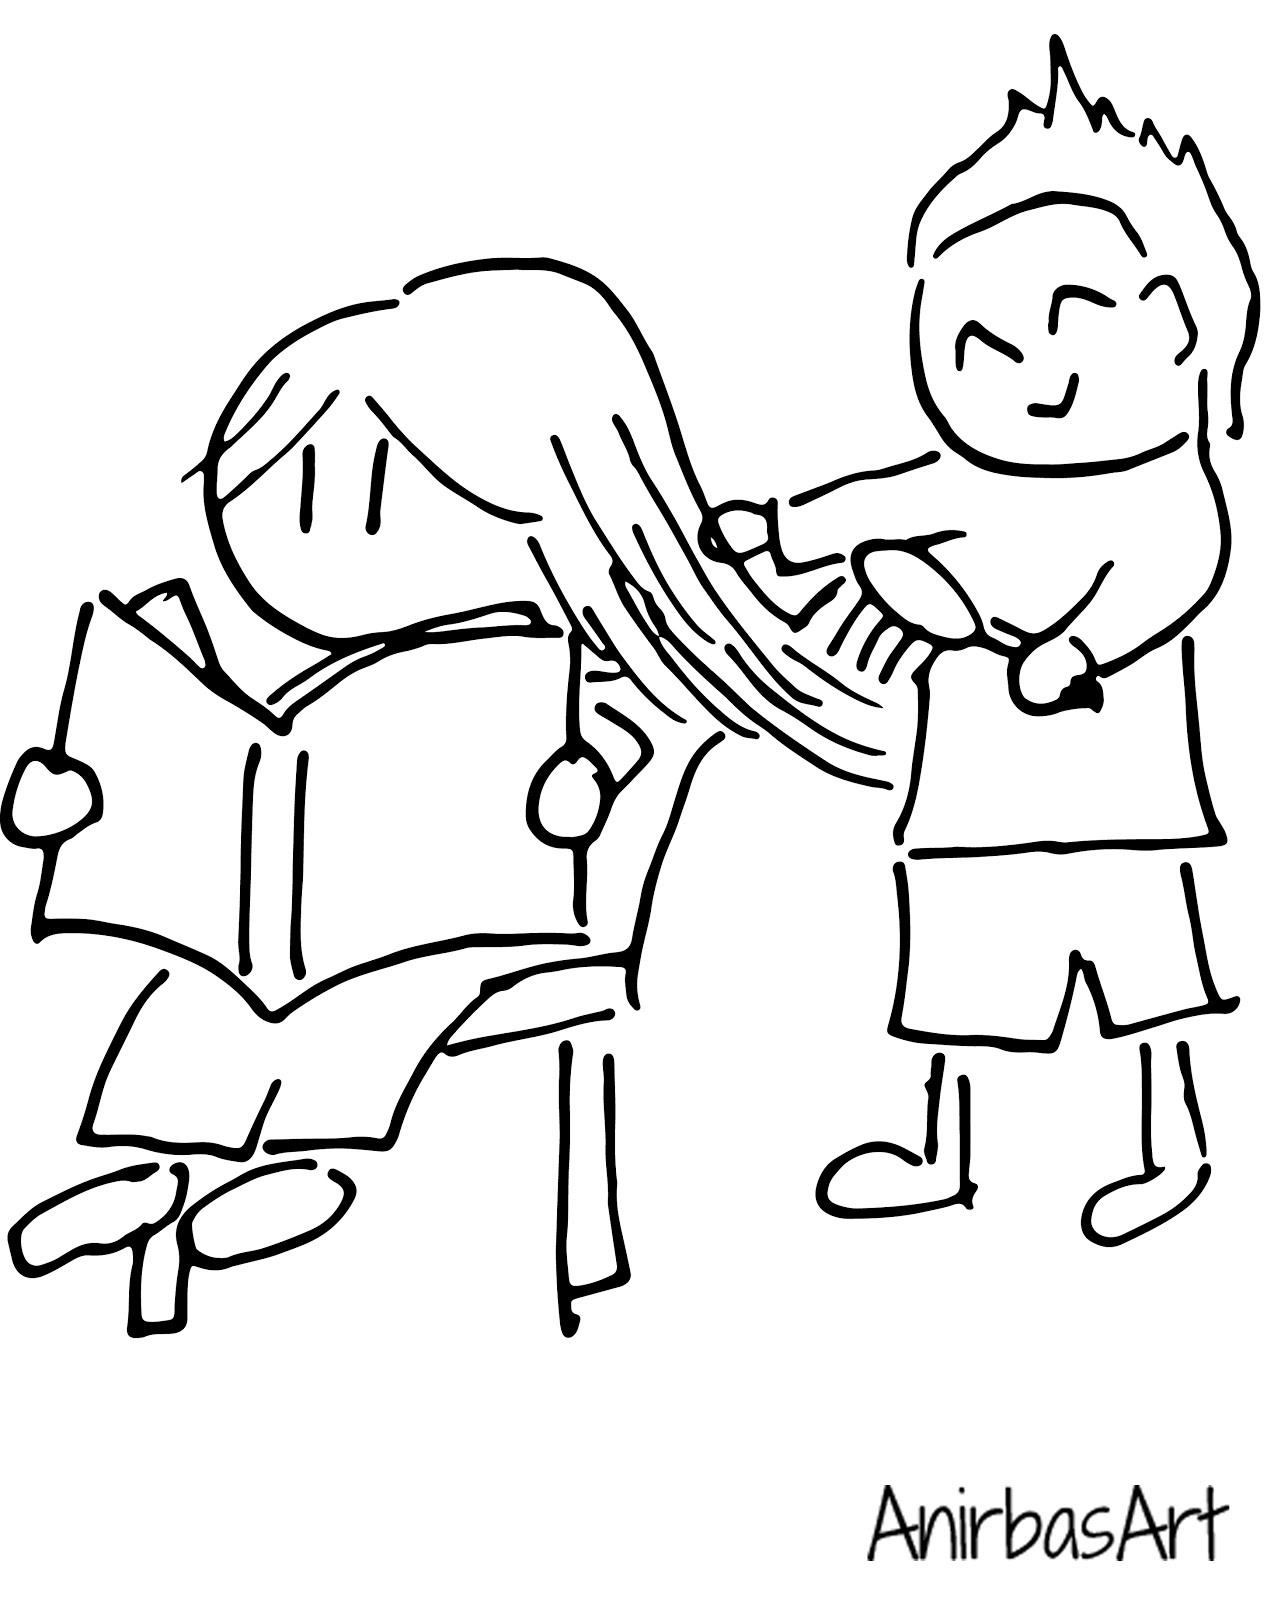 Coloring page  Princess brushing her hair  ColorKidnet